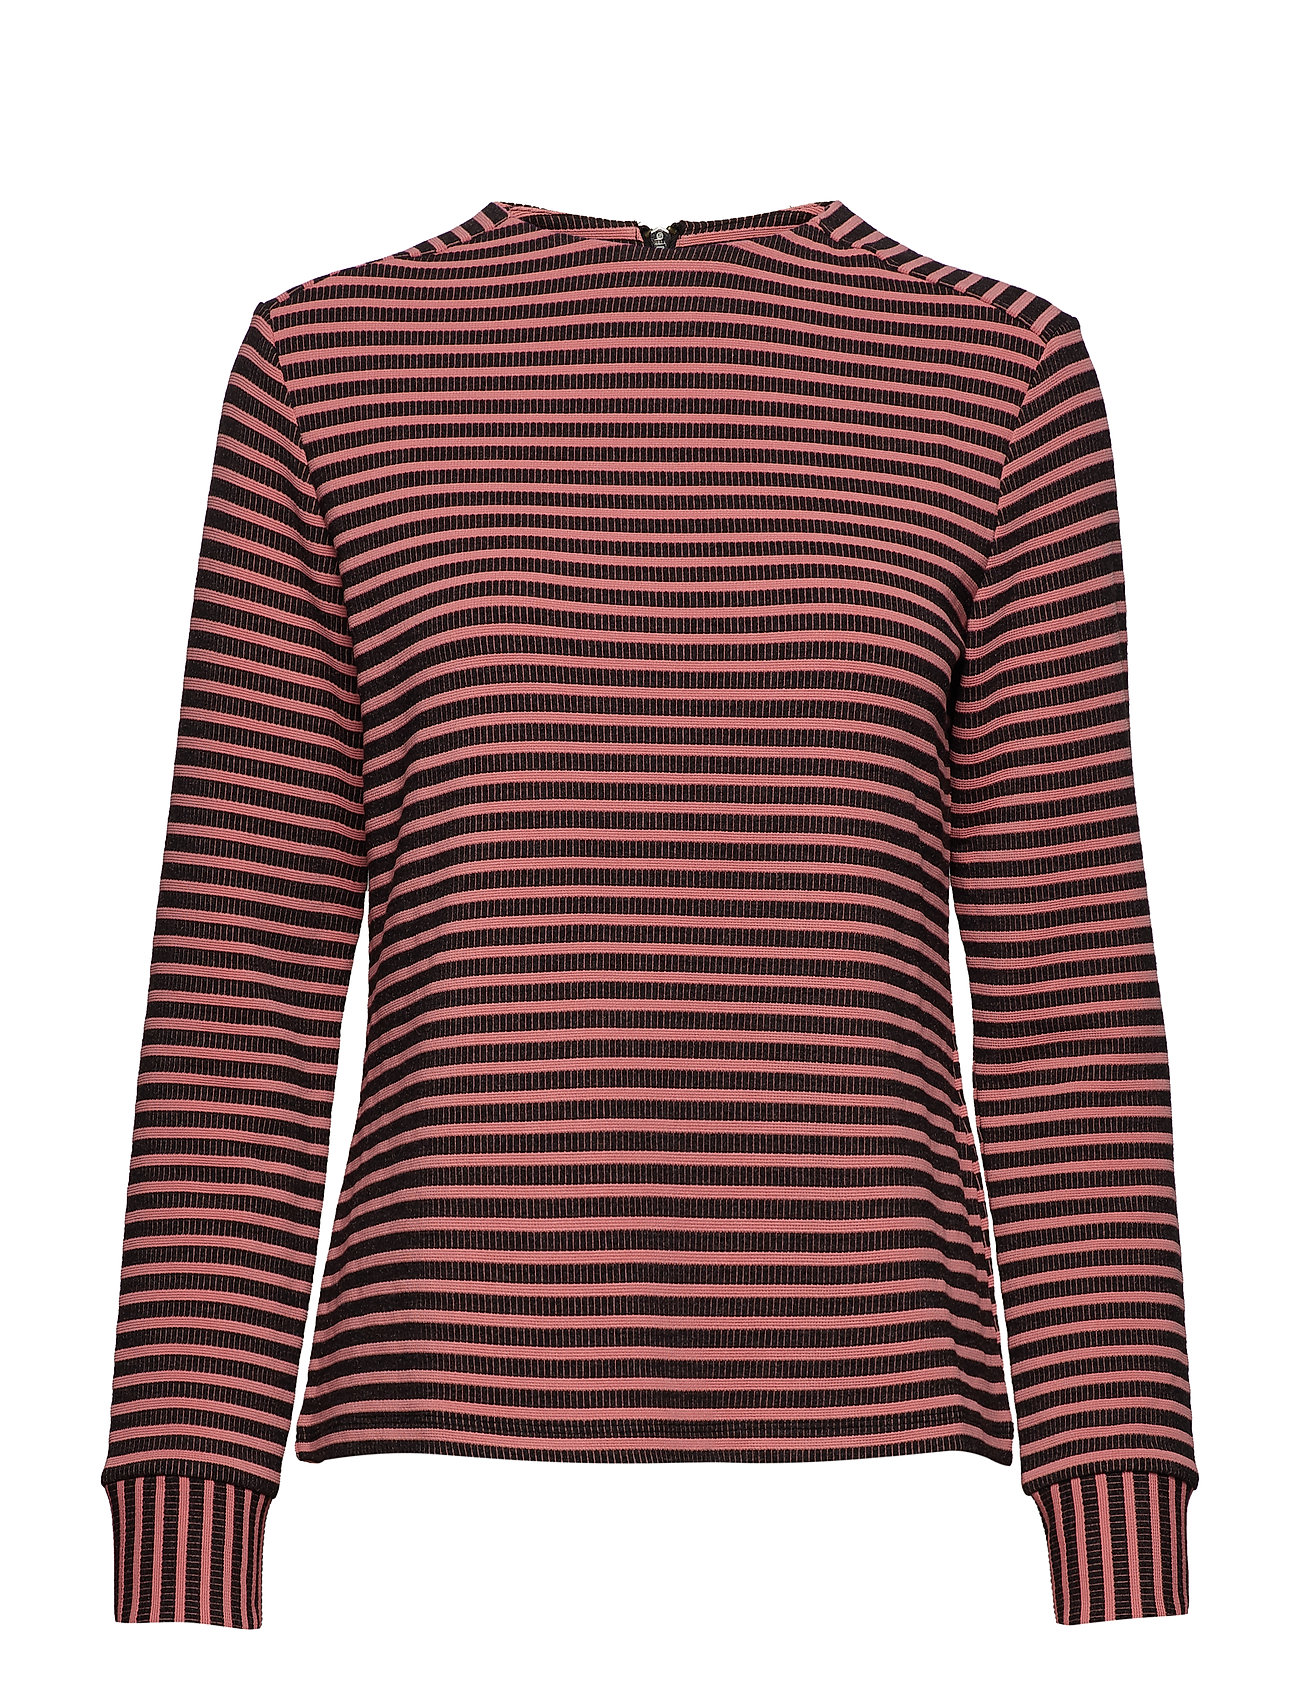 Taifun T-SHIRT LONG-SLEEVE - BLACK STRIPED